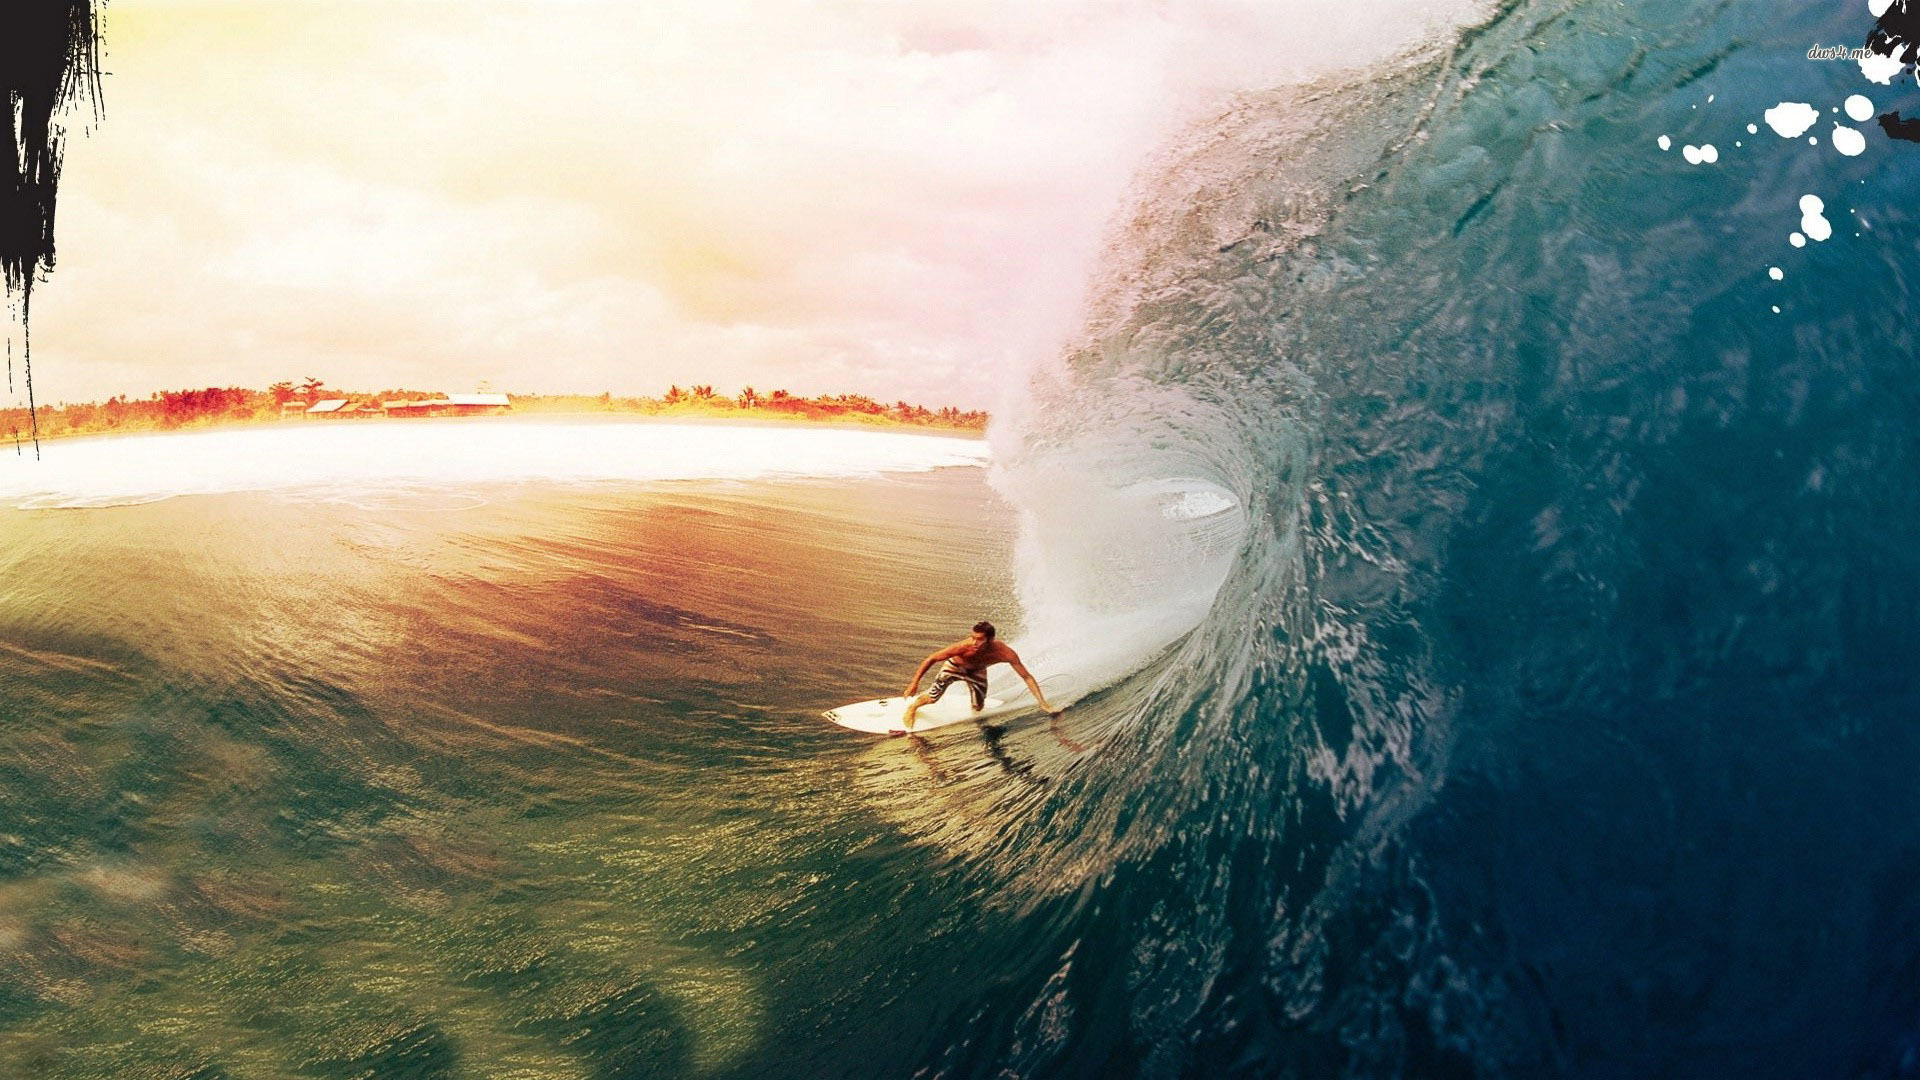 Surfer Wallpaper   MixHD wallpapers 1920x1080